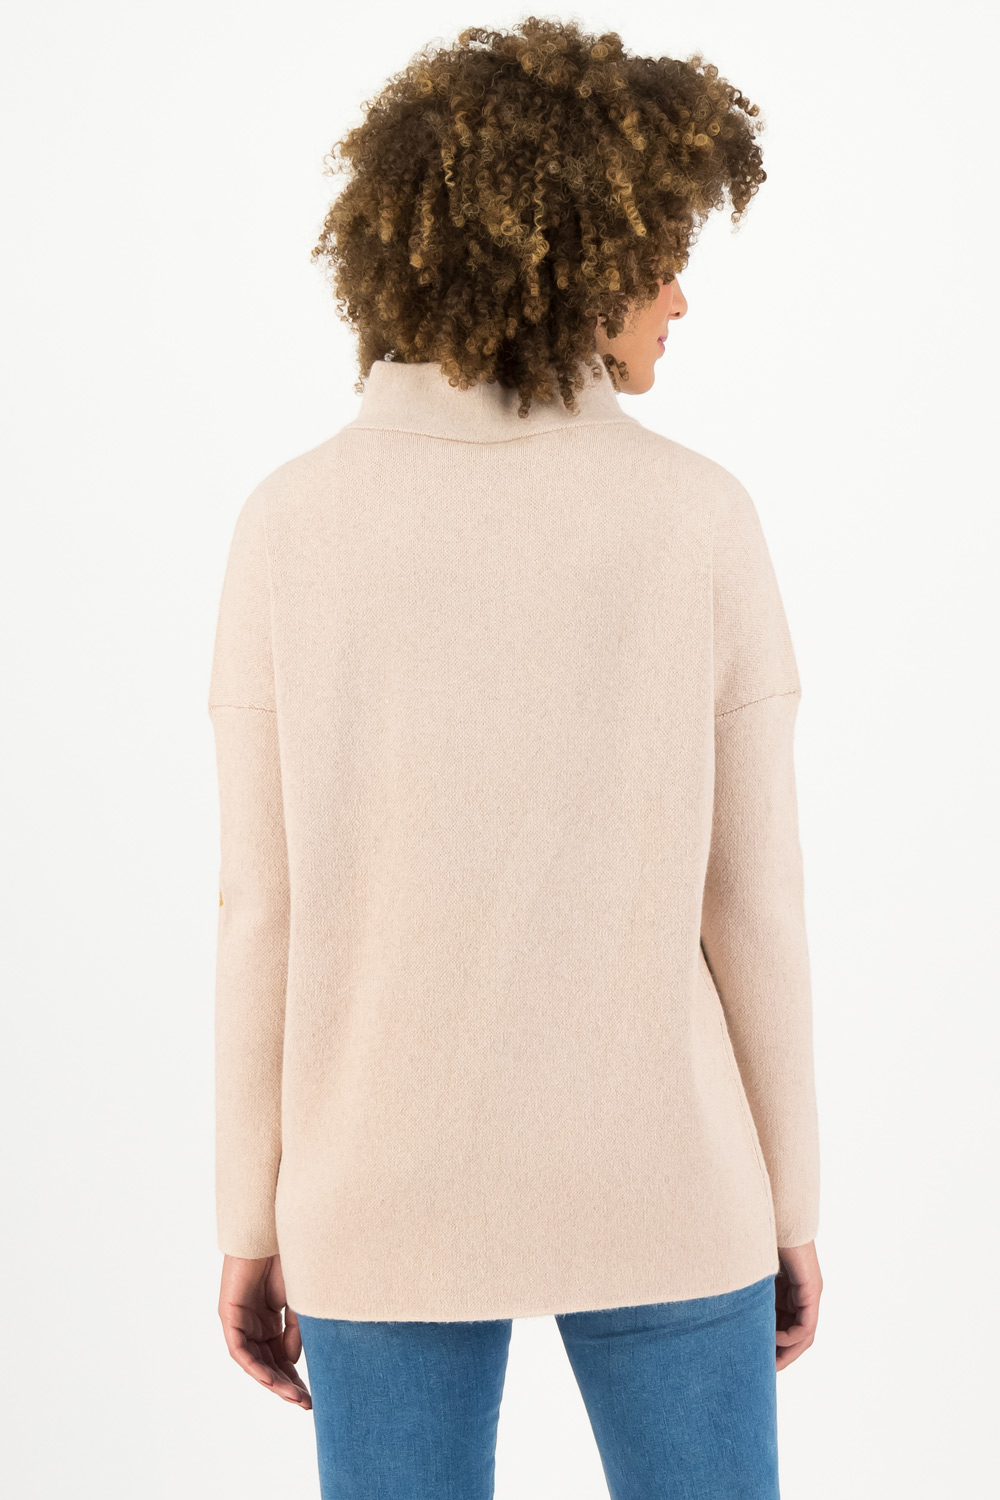 Blutsgeschwister beige maglione Reveal Roses